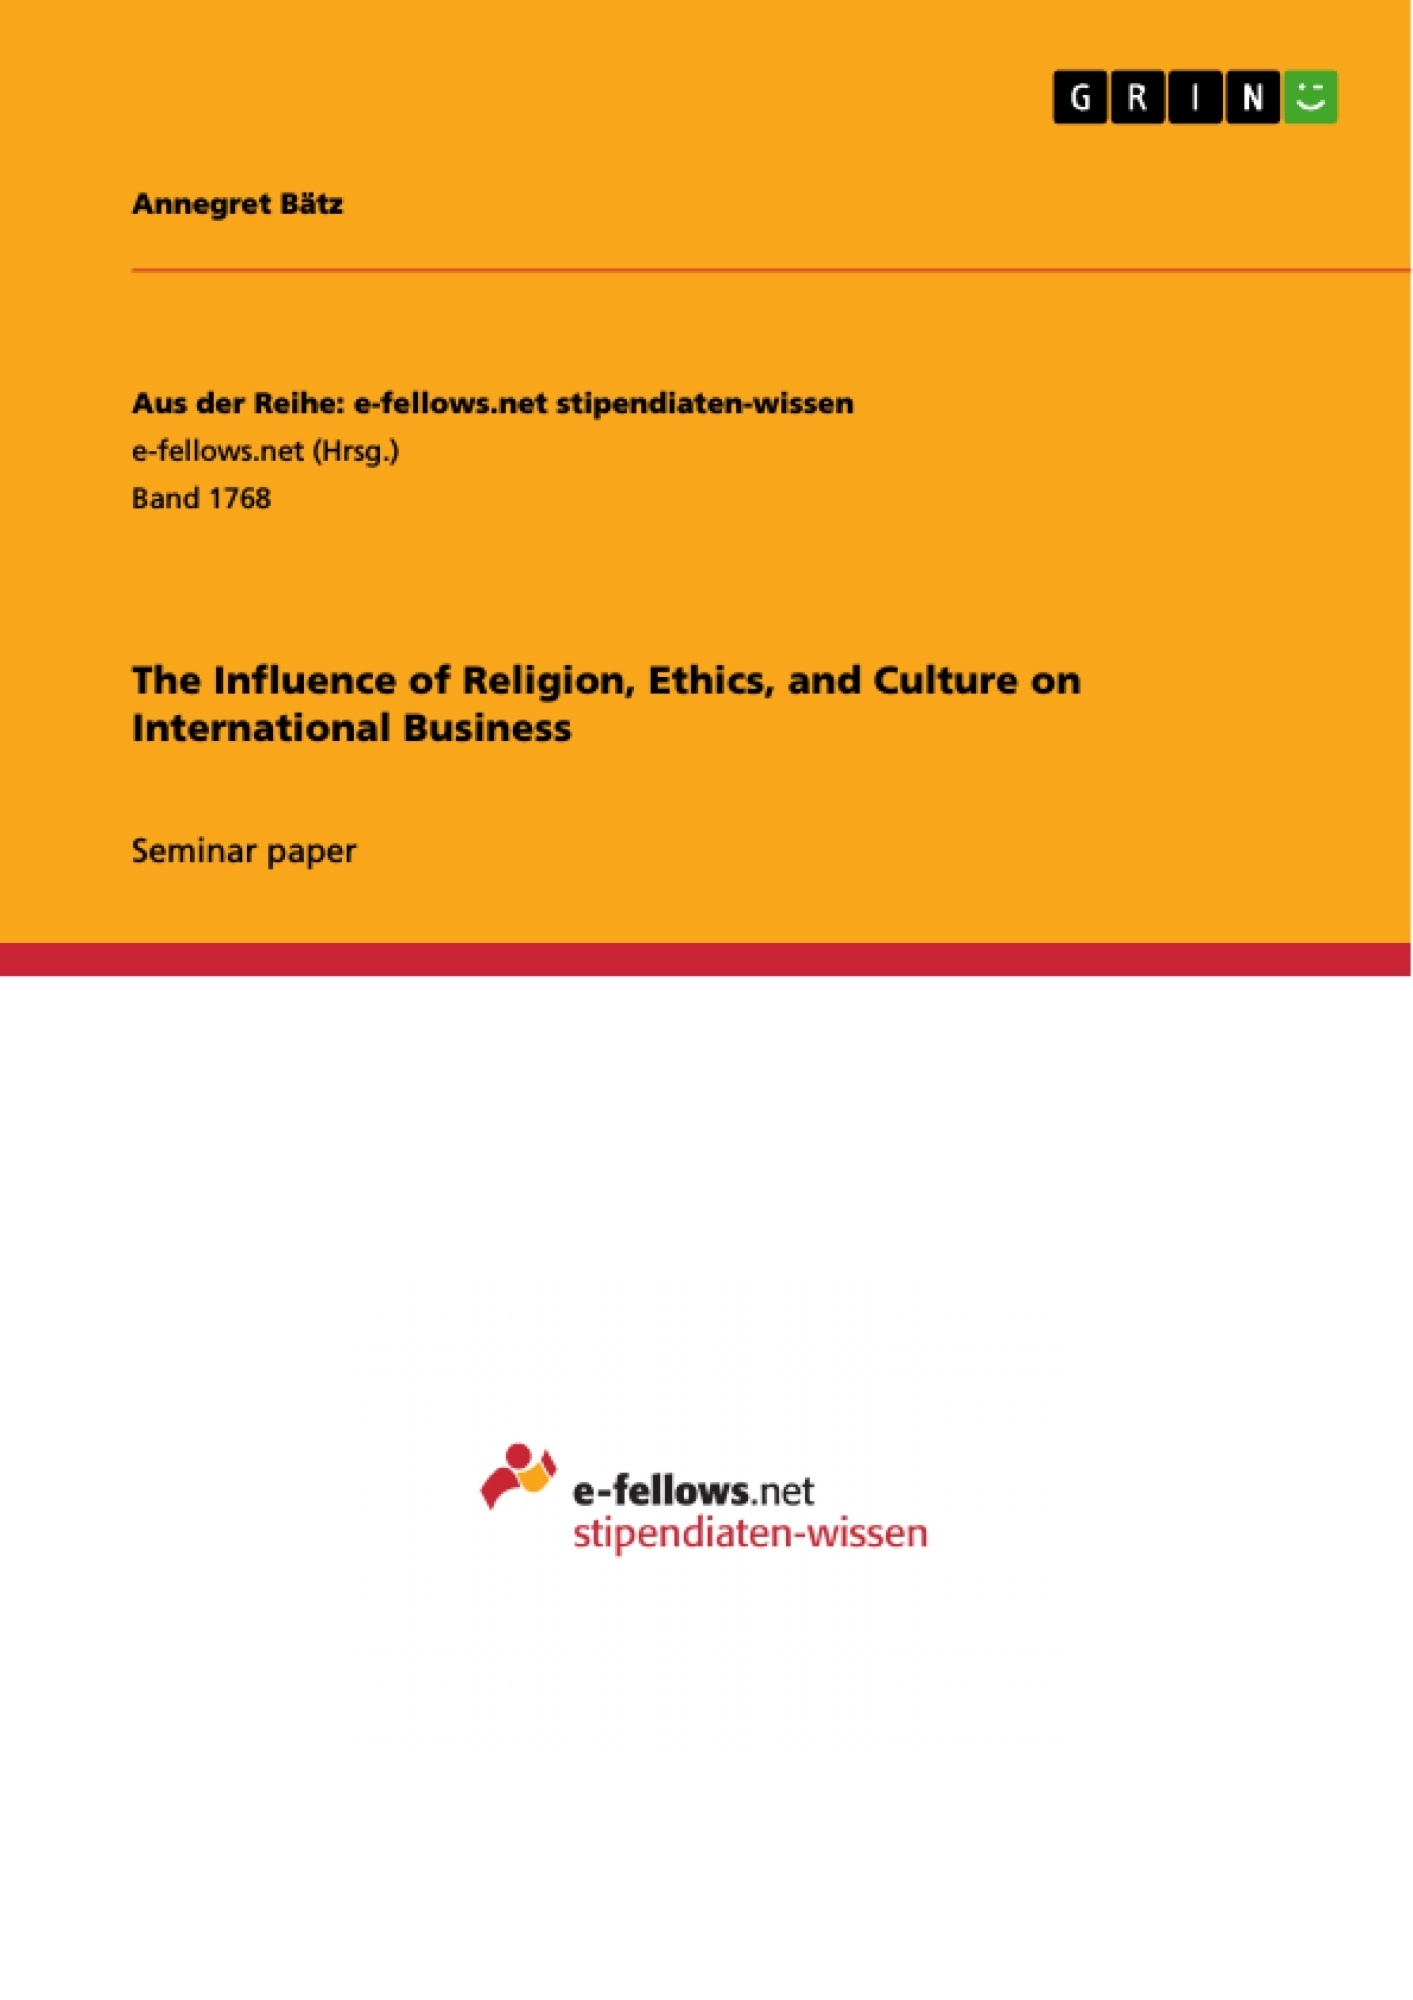 GRIN - The Influence of Religion, Ethics, and Culture on International  Business